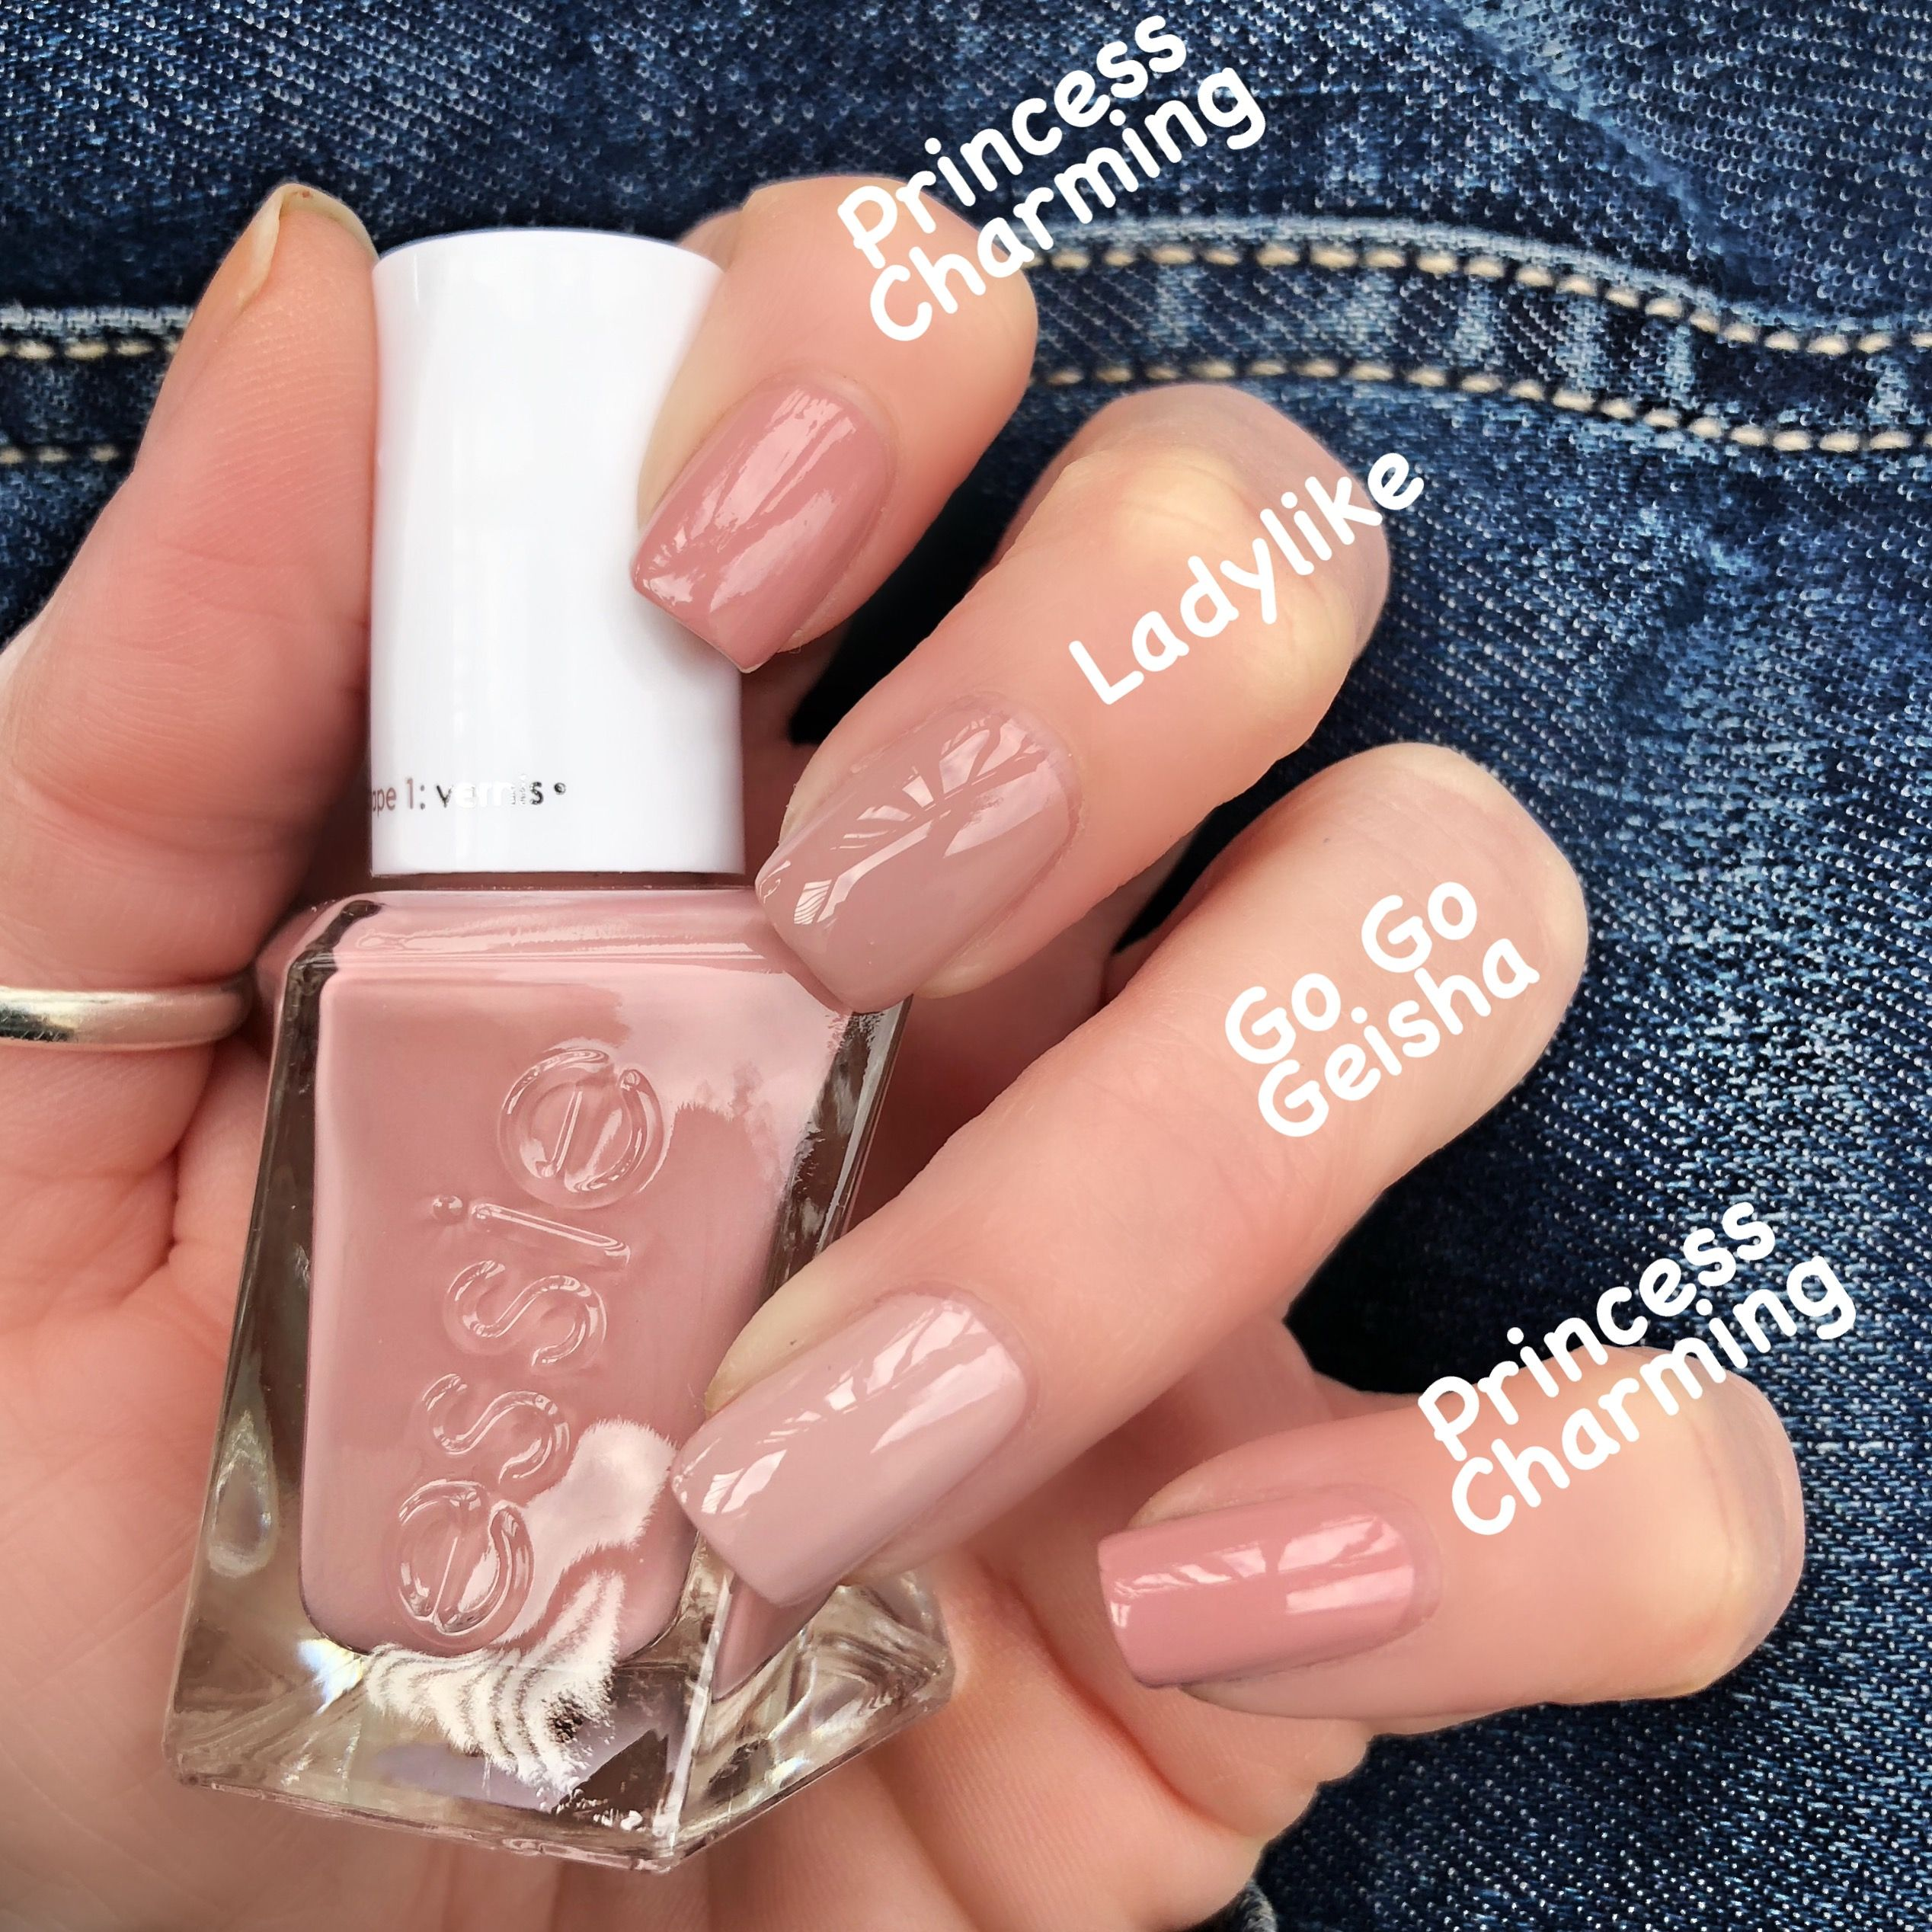 Comparison Swatches To Essie Princess Charming From The Enchanted Gel Couture Line Instagram Livwithbiv Gelove Nehty Nehty Lak Na Nehty